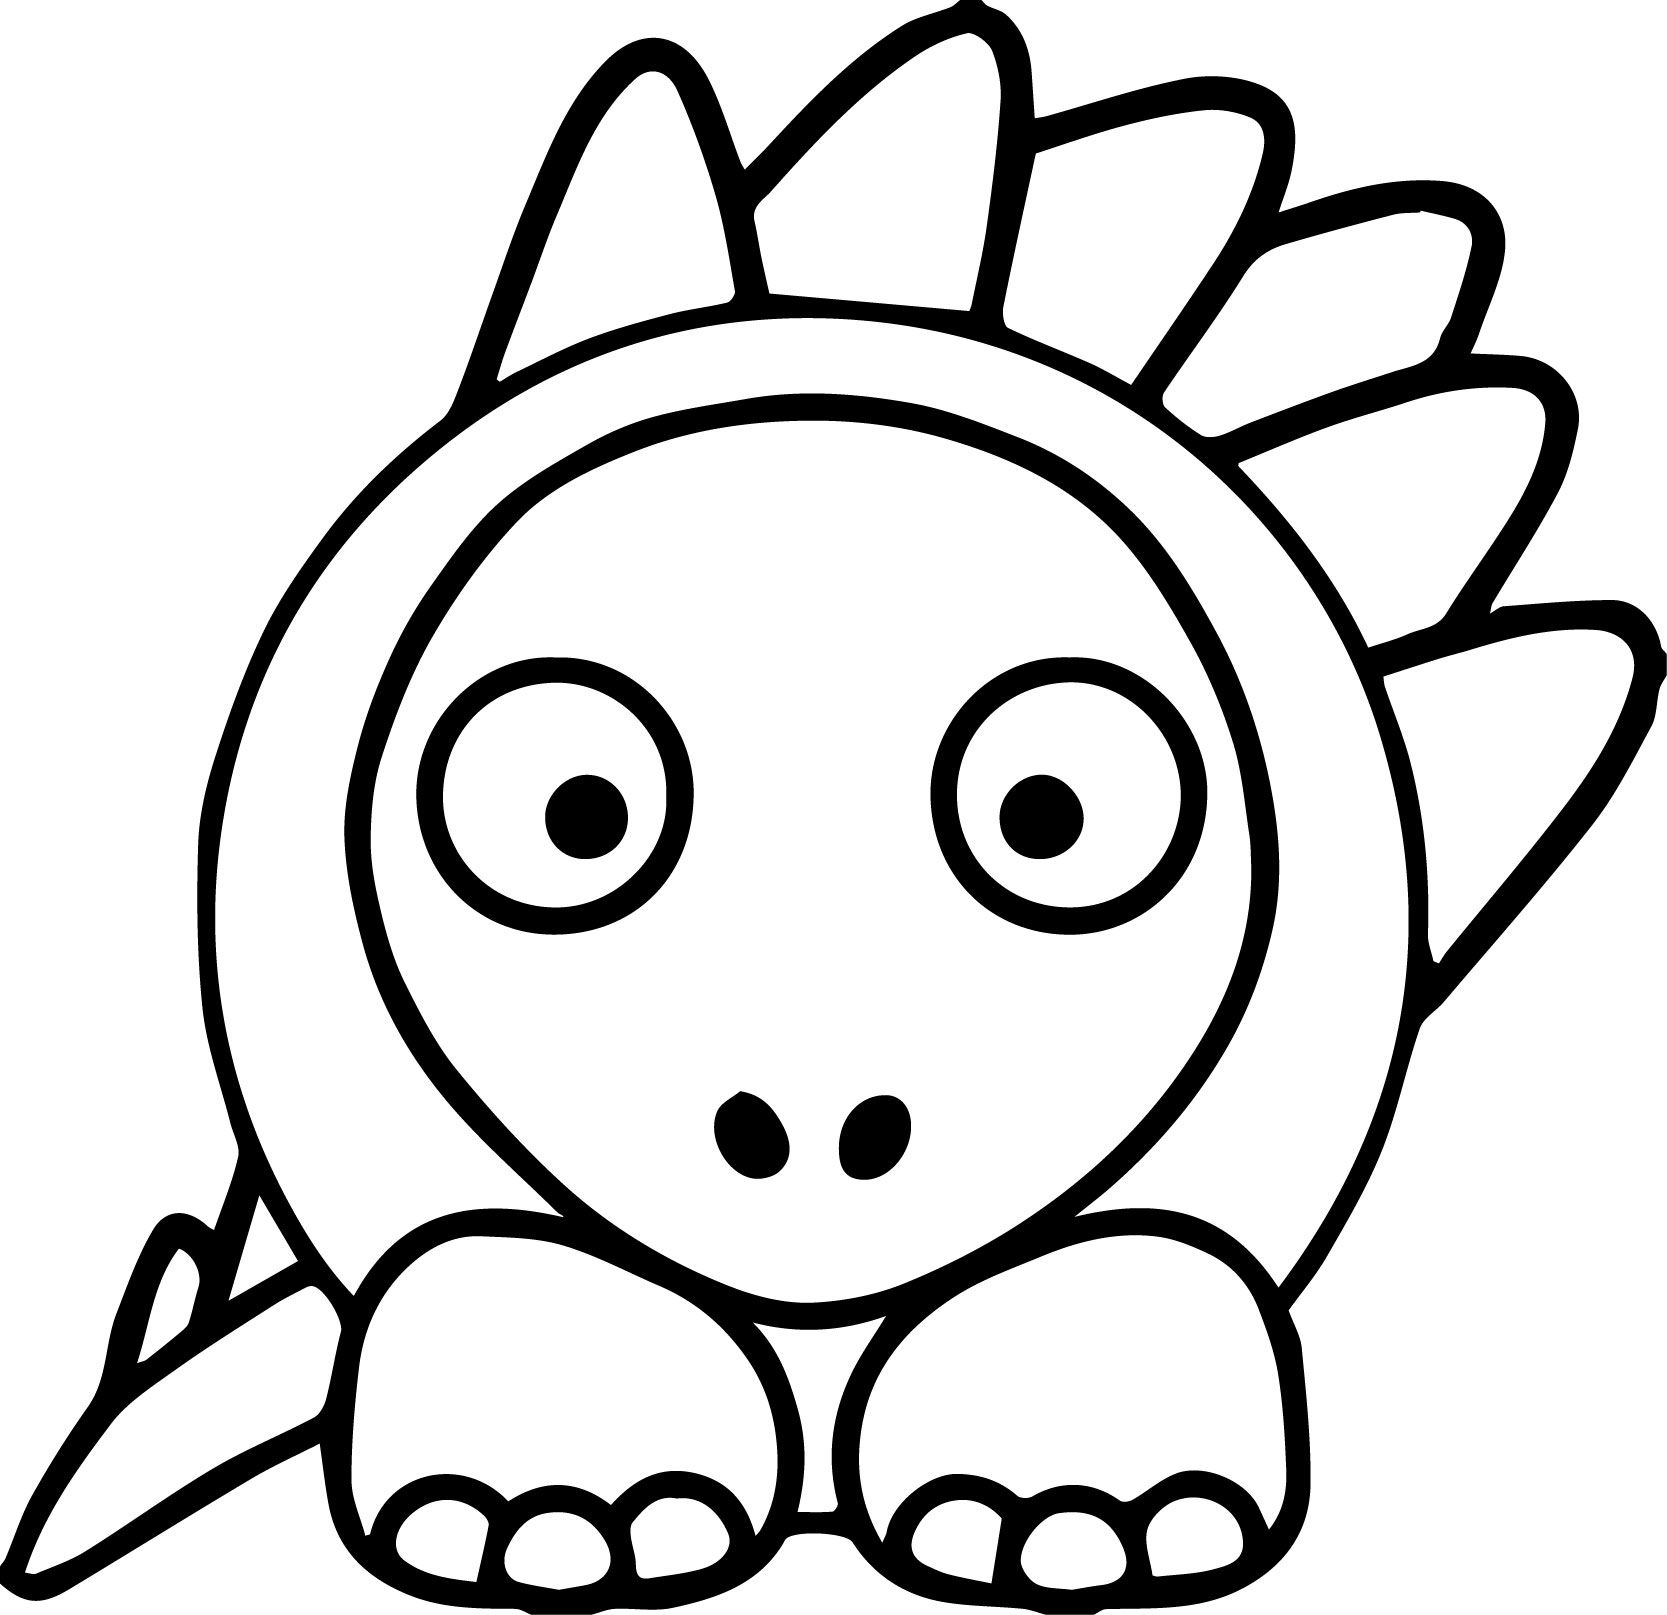 Cool Dragon Easy Coloring Page Easy Coloring Pages Dragon Coloring Page Pokemon Coloring Pages